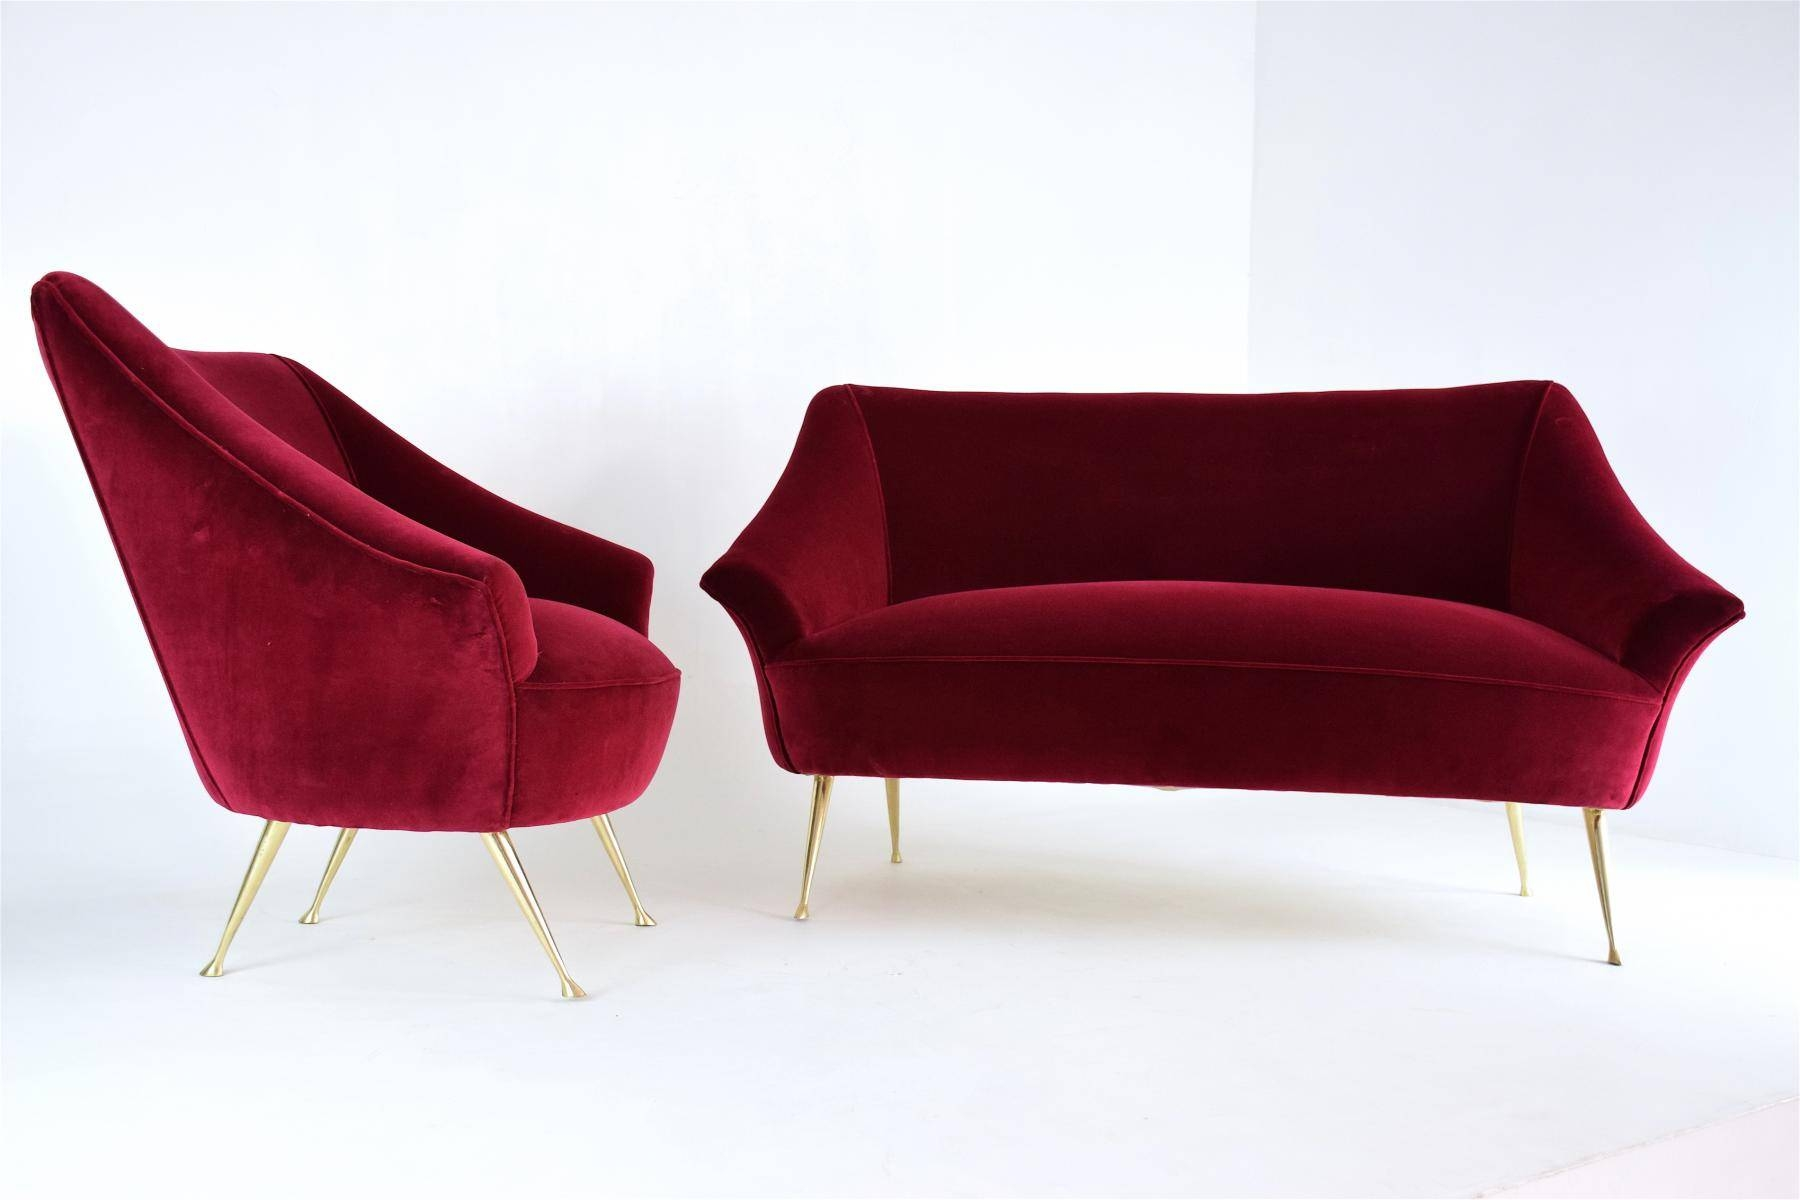 Vintage Italian Red Two-Seater Sofa And Armchair Set, 1950S, Set intended for Two Seater Sofas (Image 27 of 30)